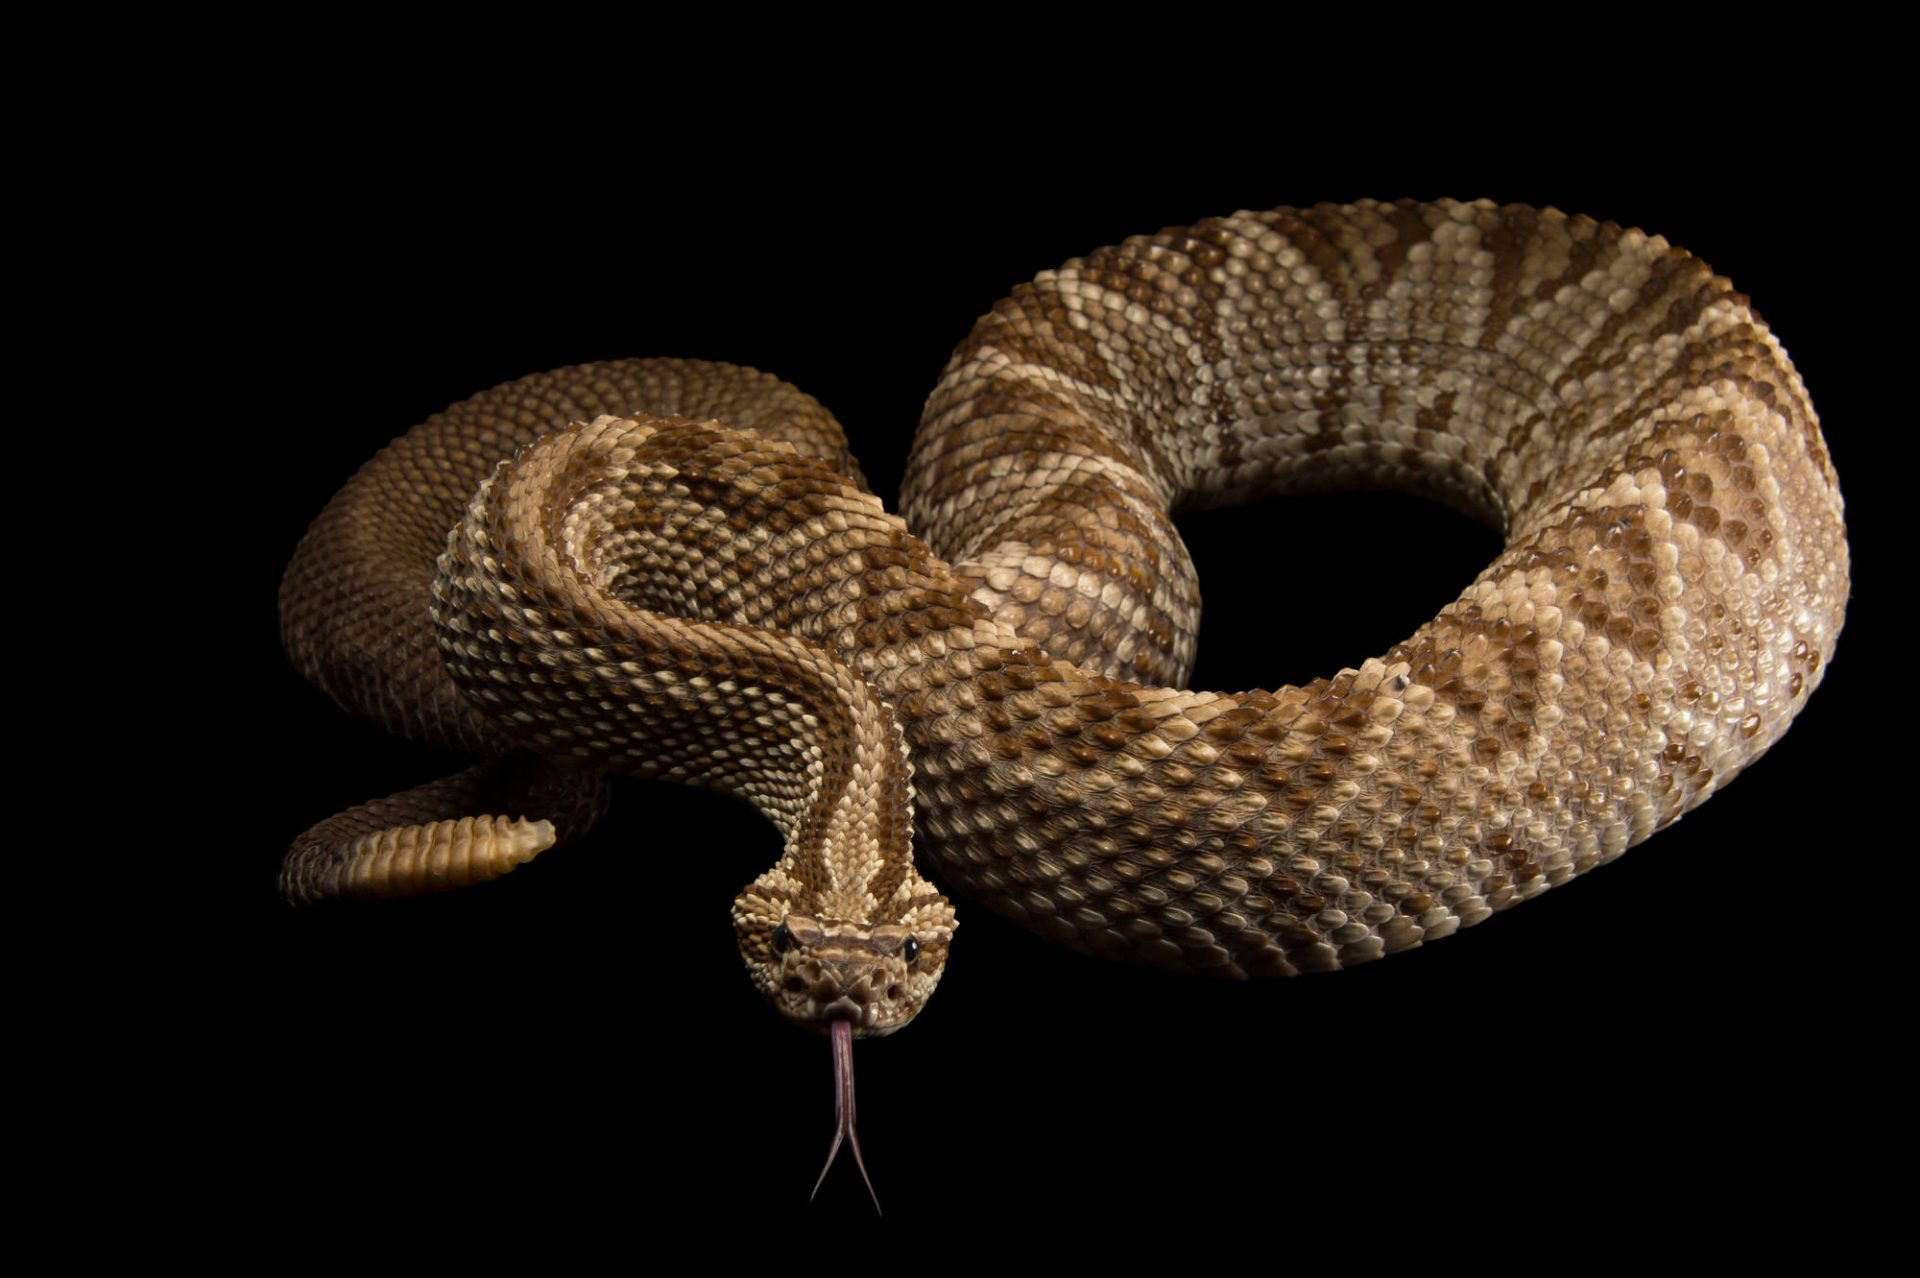 Picture of a Central Brazilian rattlesnake (Crotalus durissus terrificus) at the Oklahoma City Zoo.